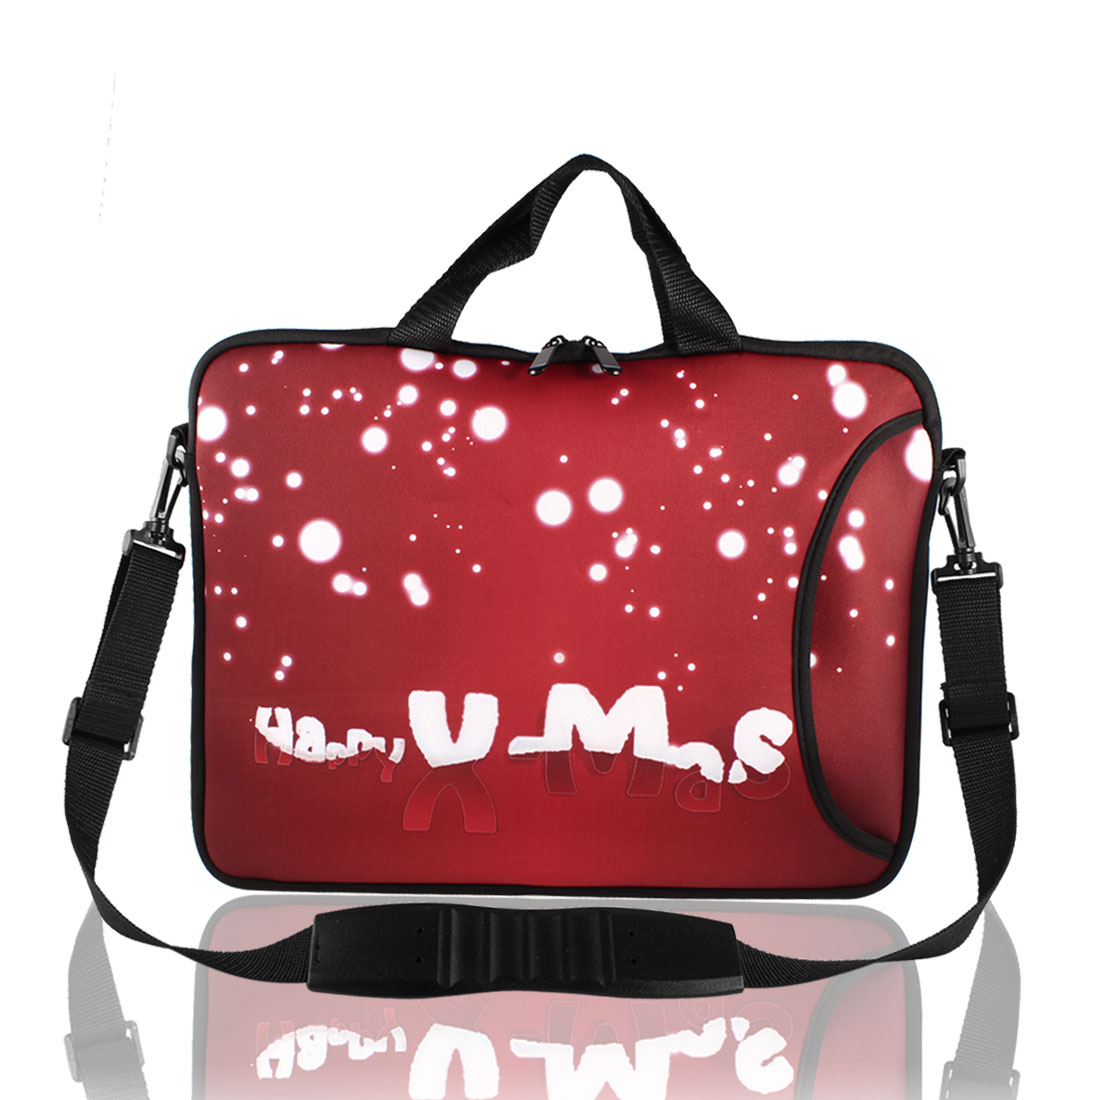 "Christmas White Dots Shoulder Bag Pouch Sleeve Case Cover Red for 15"" Laptop"